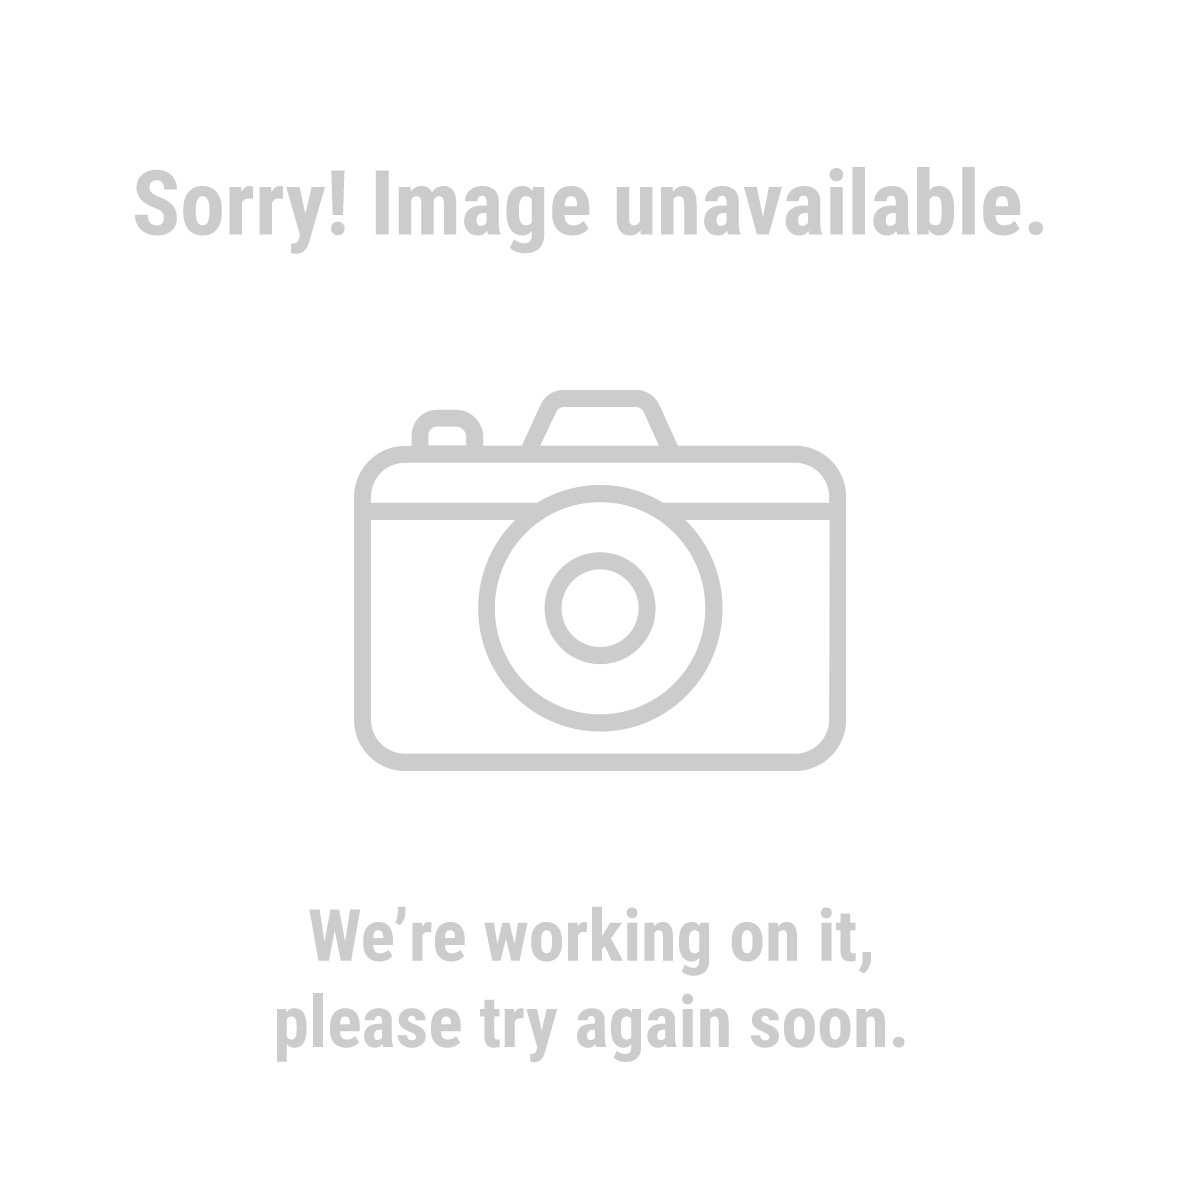 StikTek™ 63245 60 Yd. x 1.88 in. General Purpose Masking Tape